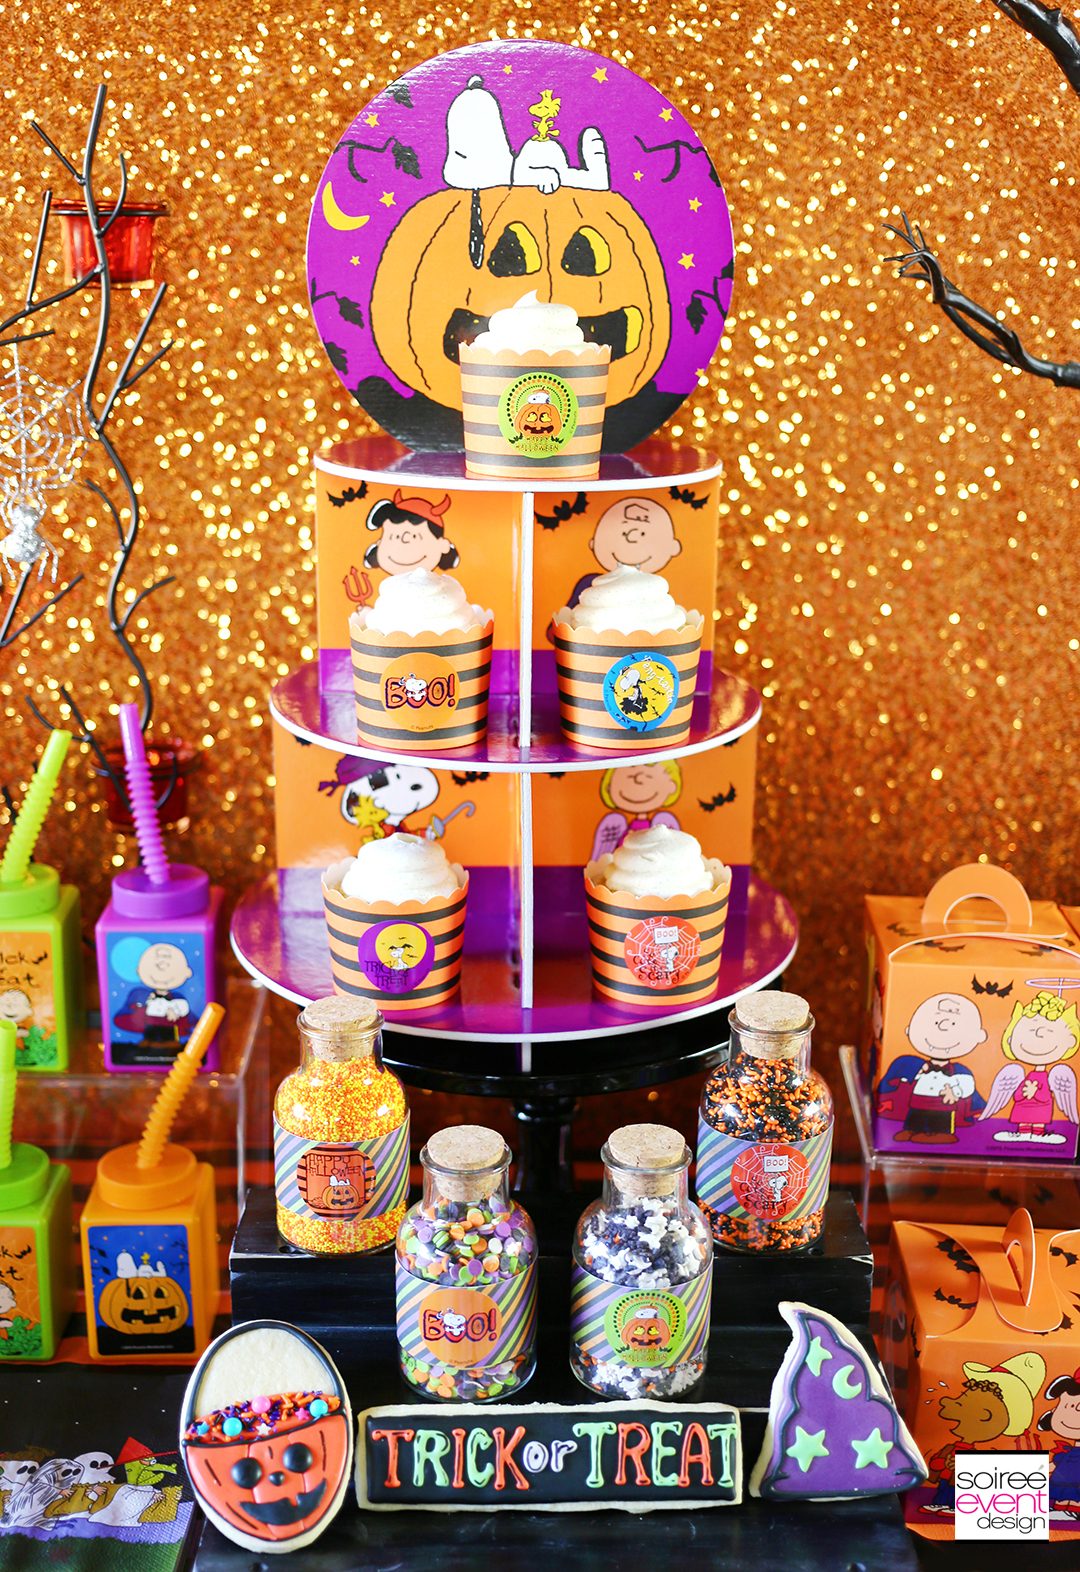 peanuts-halloween-party-cupcake-stand